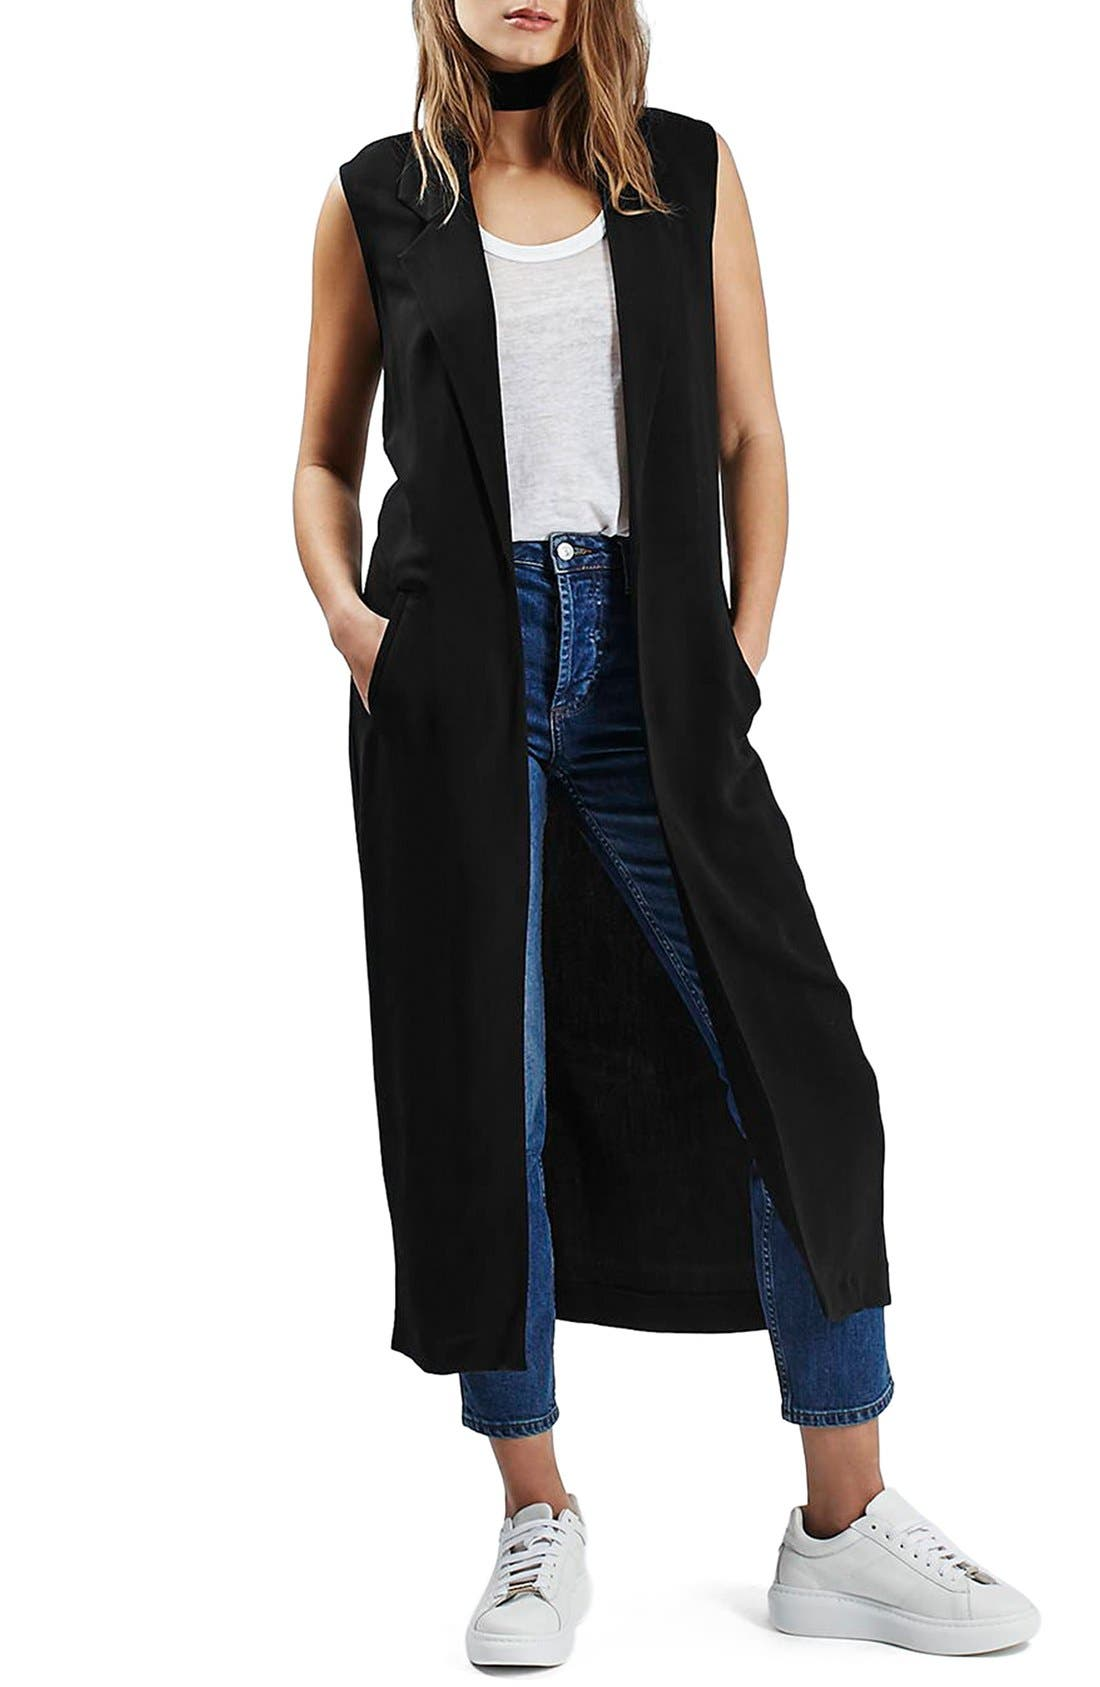 Alternate Image 1 Selected - Topshop Sleeveless Duster Coat